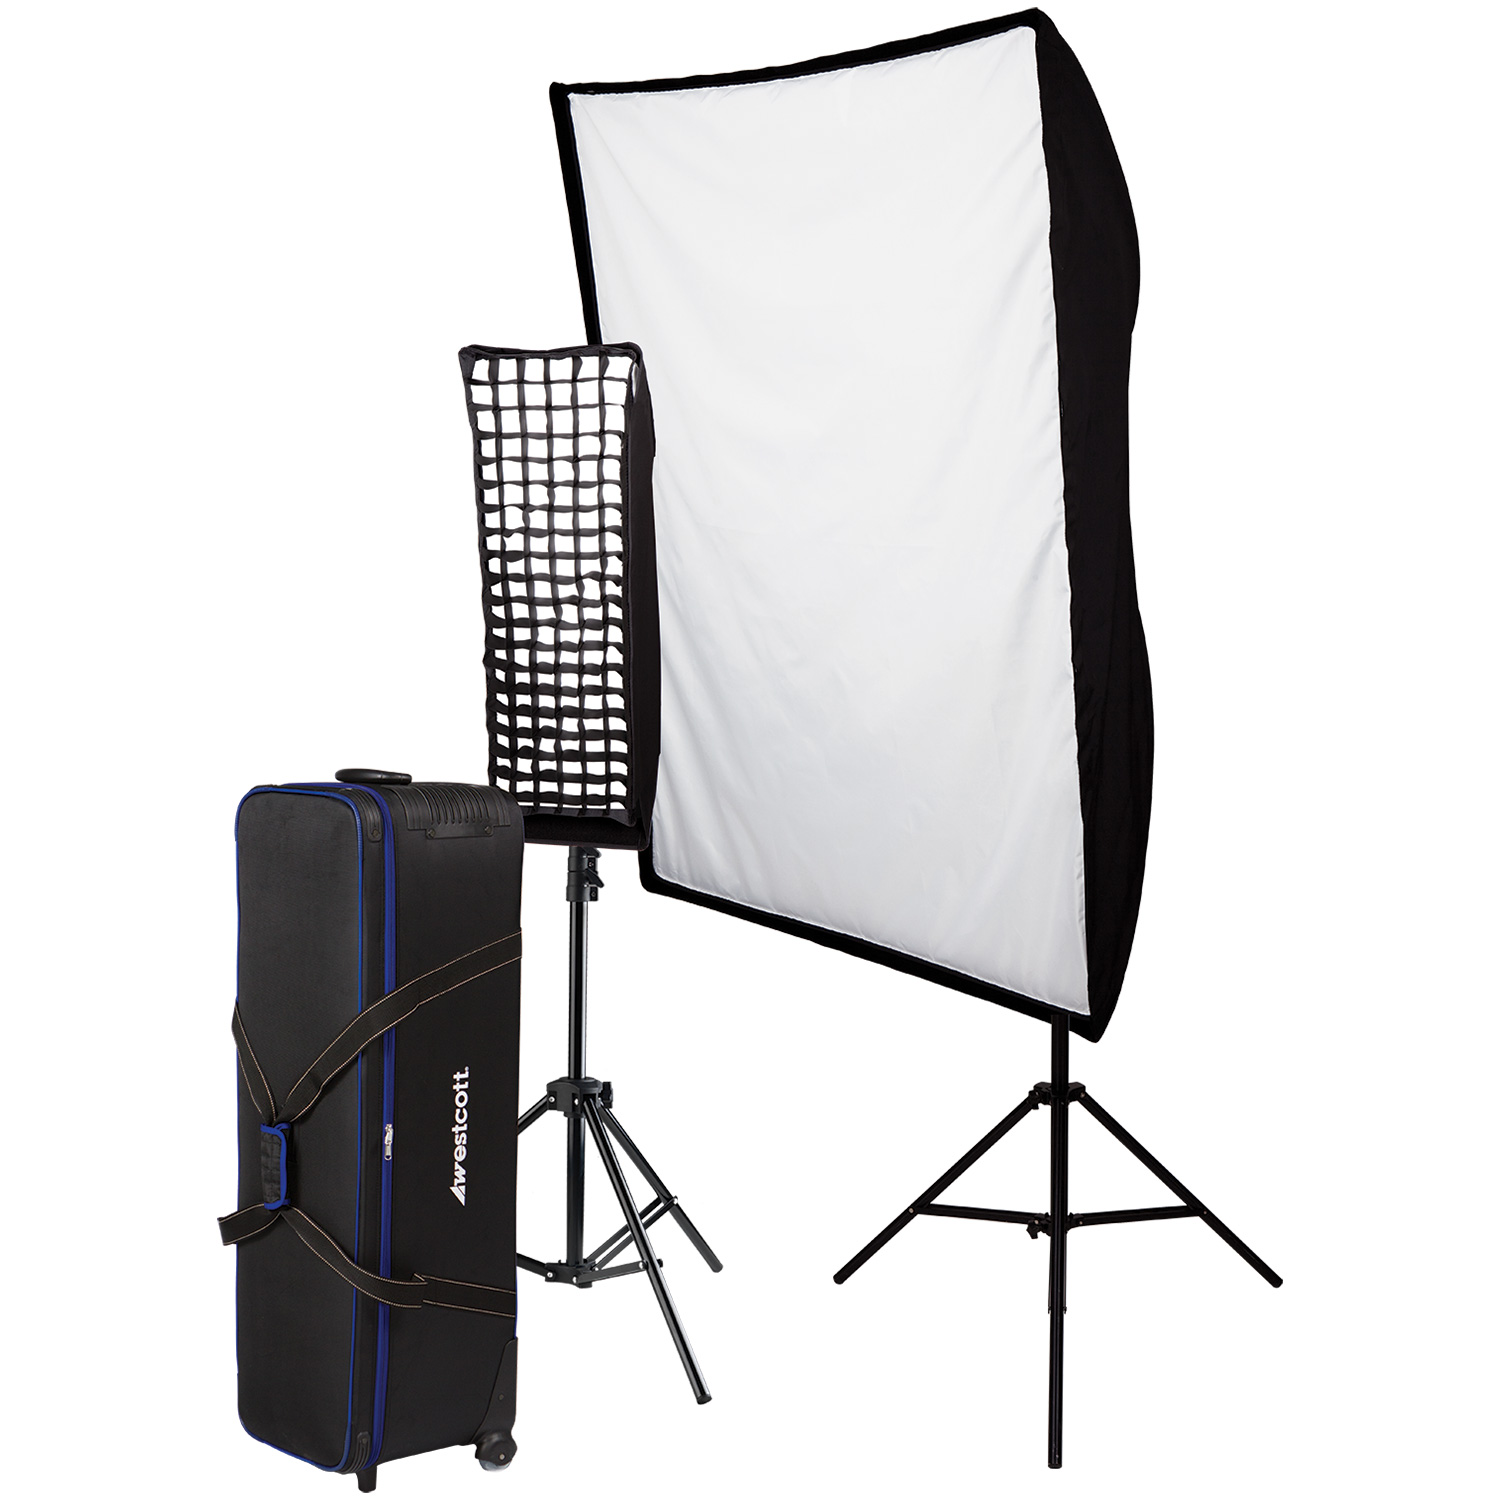 Spiderlite TD6 2-Light Perfect Portrait Kit